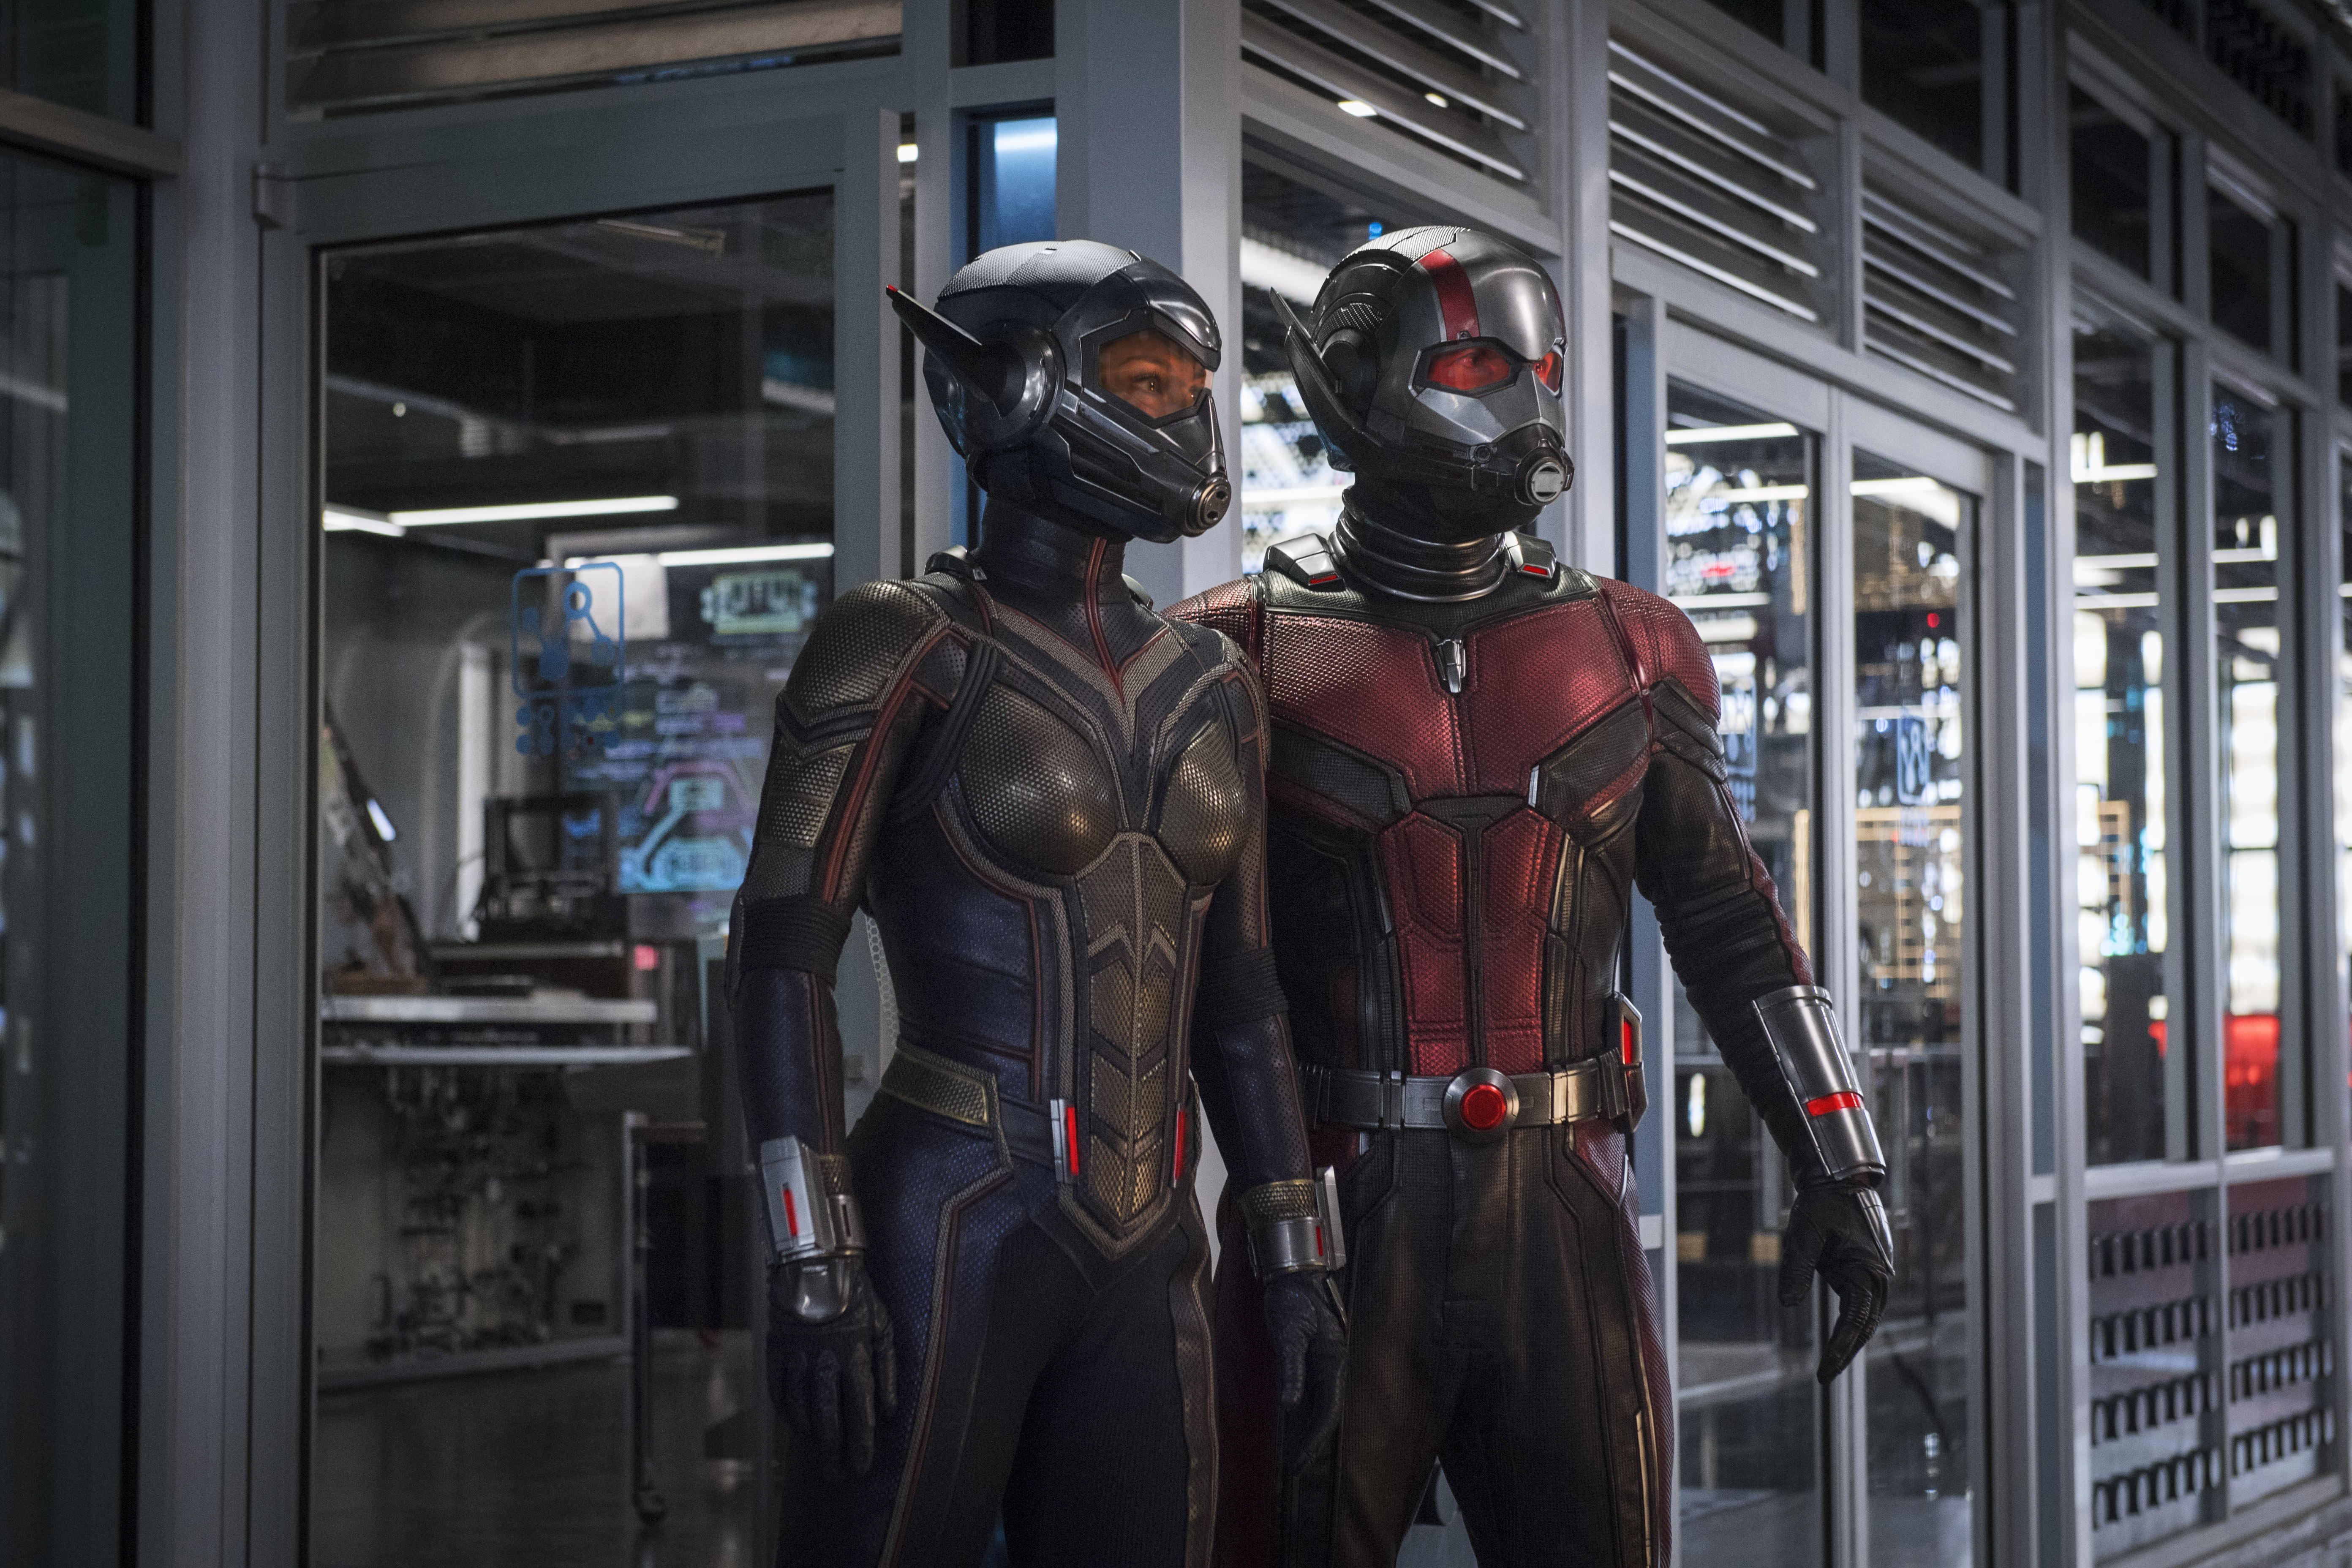 "From the Marvel Cinematic Universe comes ""Ant Man and the Wasp,"" a new chapter featuring heroes with the astonishing ability to shrink. In the aftermath of ""Captain America: Civil War,"" Scott Lang grapples with the consequences of his choices as both a Super Hero and a father. As he struggles to rebalance his home life with his responsibilities as Ant-Man, he's confronted by Hope van Dyne and Dr. Hank Pym with an urgent new mission. Scott must once again put on the suit and learn to fight alongside the Wasp as the team works together to uncover secrets from the past.<br />  <br /> ""Ant-Man and the Wasp"" is directed by Peyton Reed and stars Paul Rudd, Evangeline Lilly, Michael Pena, Walton Goggins, Bobby Cannavale,  Judy Greer, Tip ""T.I."" Harris, David Dastmalchian, Hannah John Kamen, Abby Ryder-Fortson, Randall Park, with Michelle Pfeiffer, with Laurence Fishburne, and Michael Douglas.<br />  <br /> Kevin Feige is producing with Louis D'Esposito, Victoria Alonso, Stephen Broussard, Charles Newirth, and Stan Lee serving as executive producers. Chris McKenna & Erik Sommers, Paul Rudd, Andrew Barrer & Gabriel Ferrari wrote the screenplay. ""Ant-Man and the Wasp"" hits U.S. theaters on July 6, 2018."